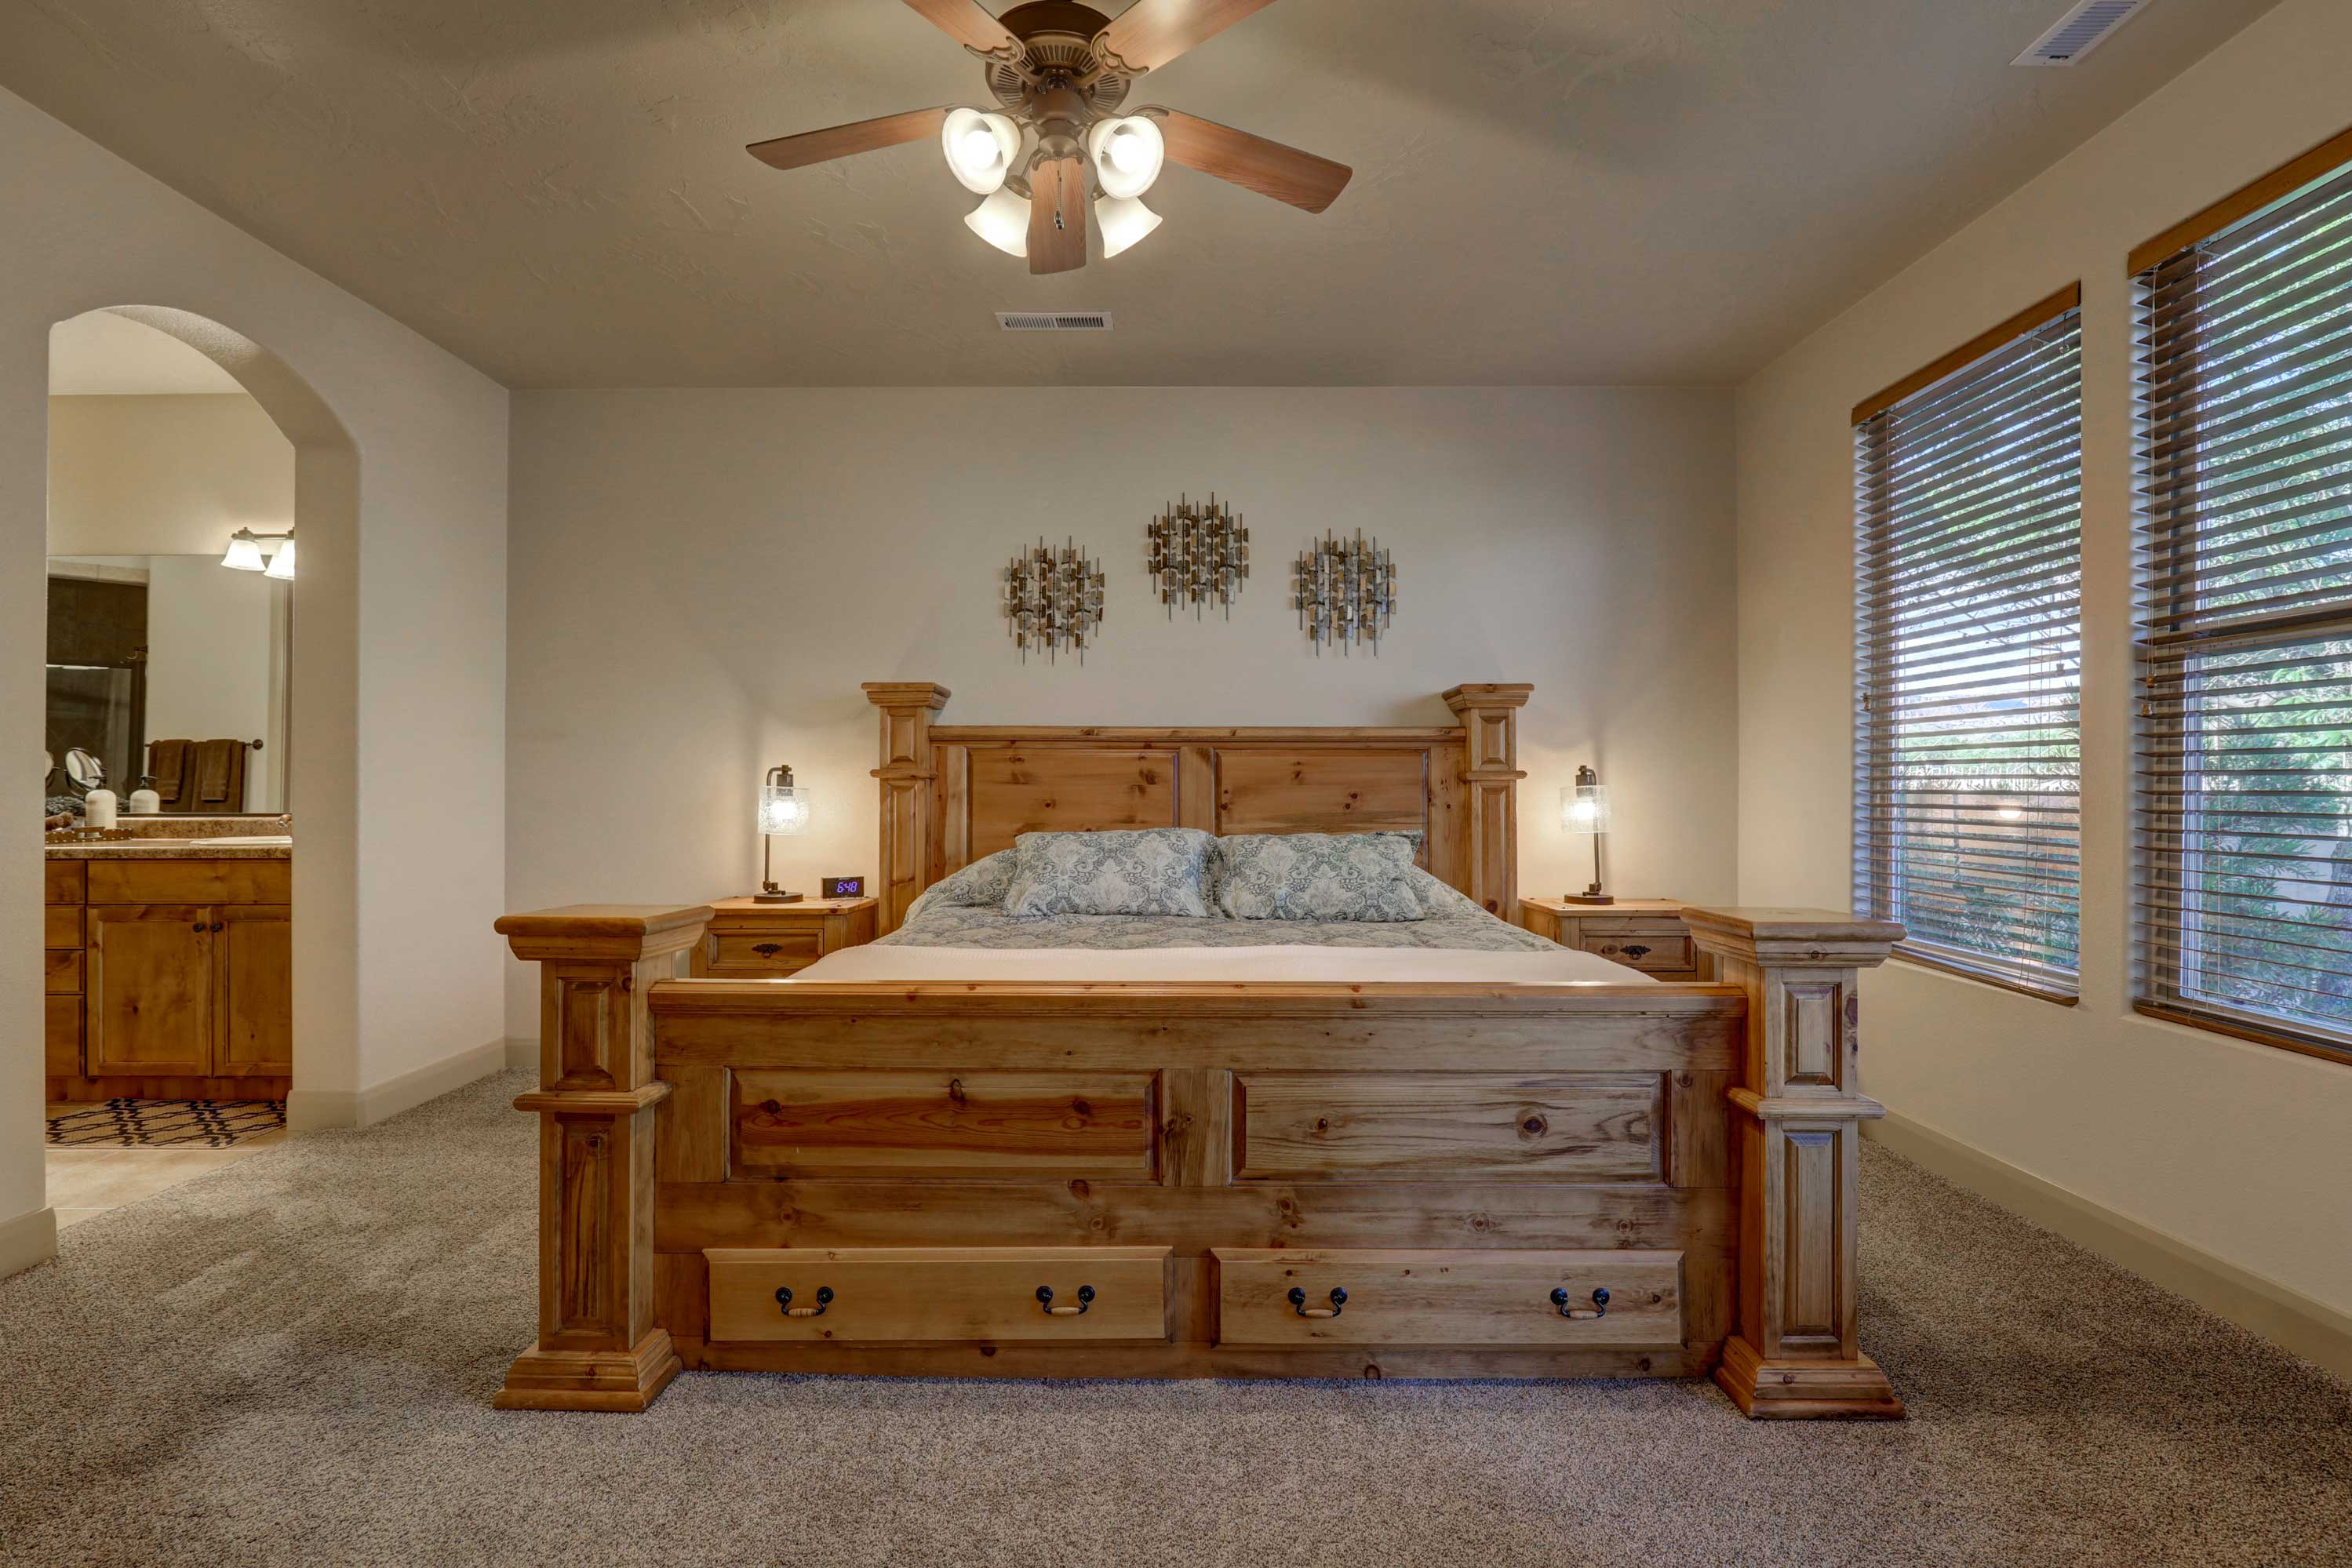 The master bedroom features a lavish king-sized bed.